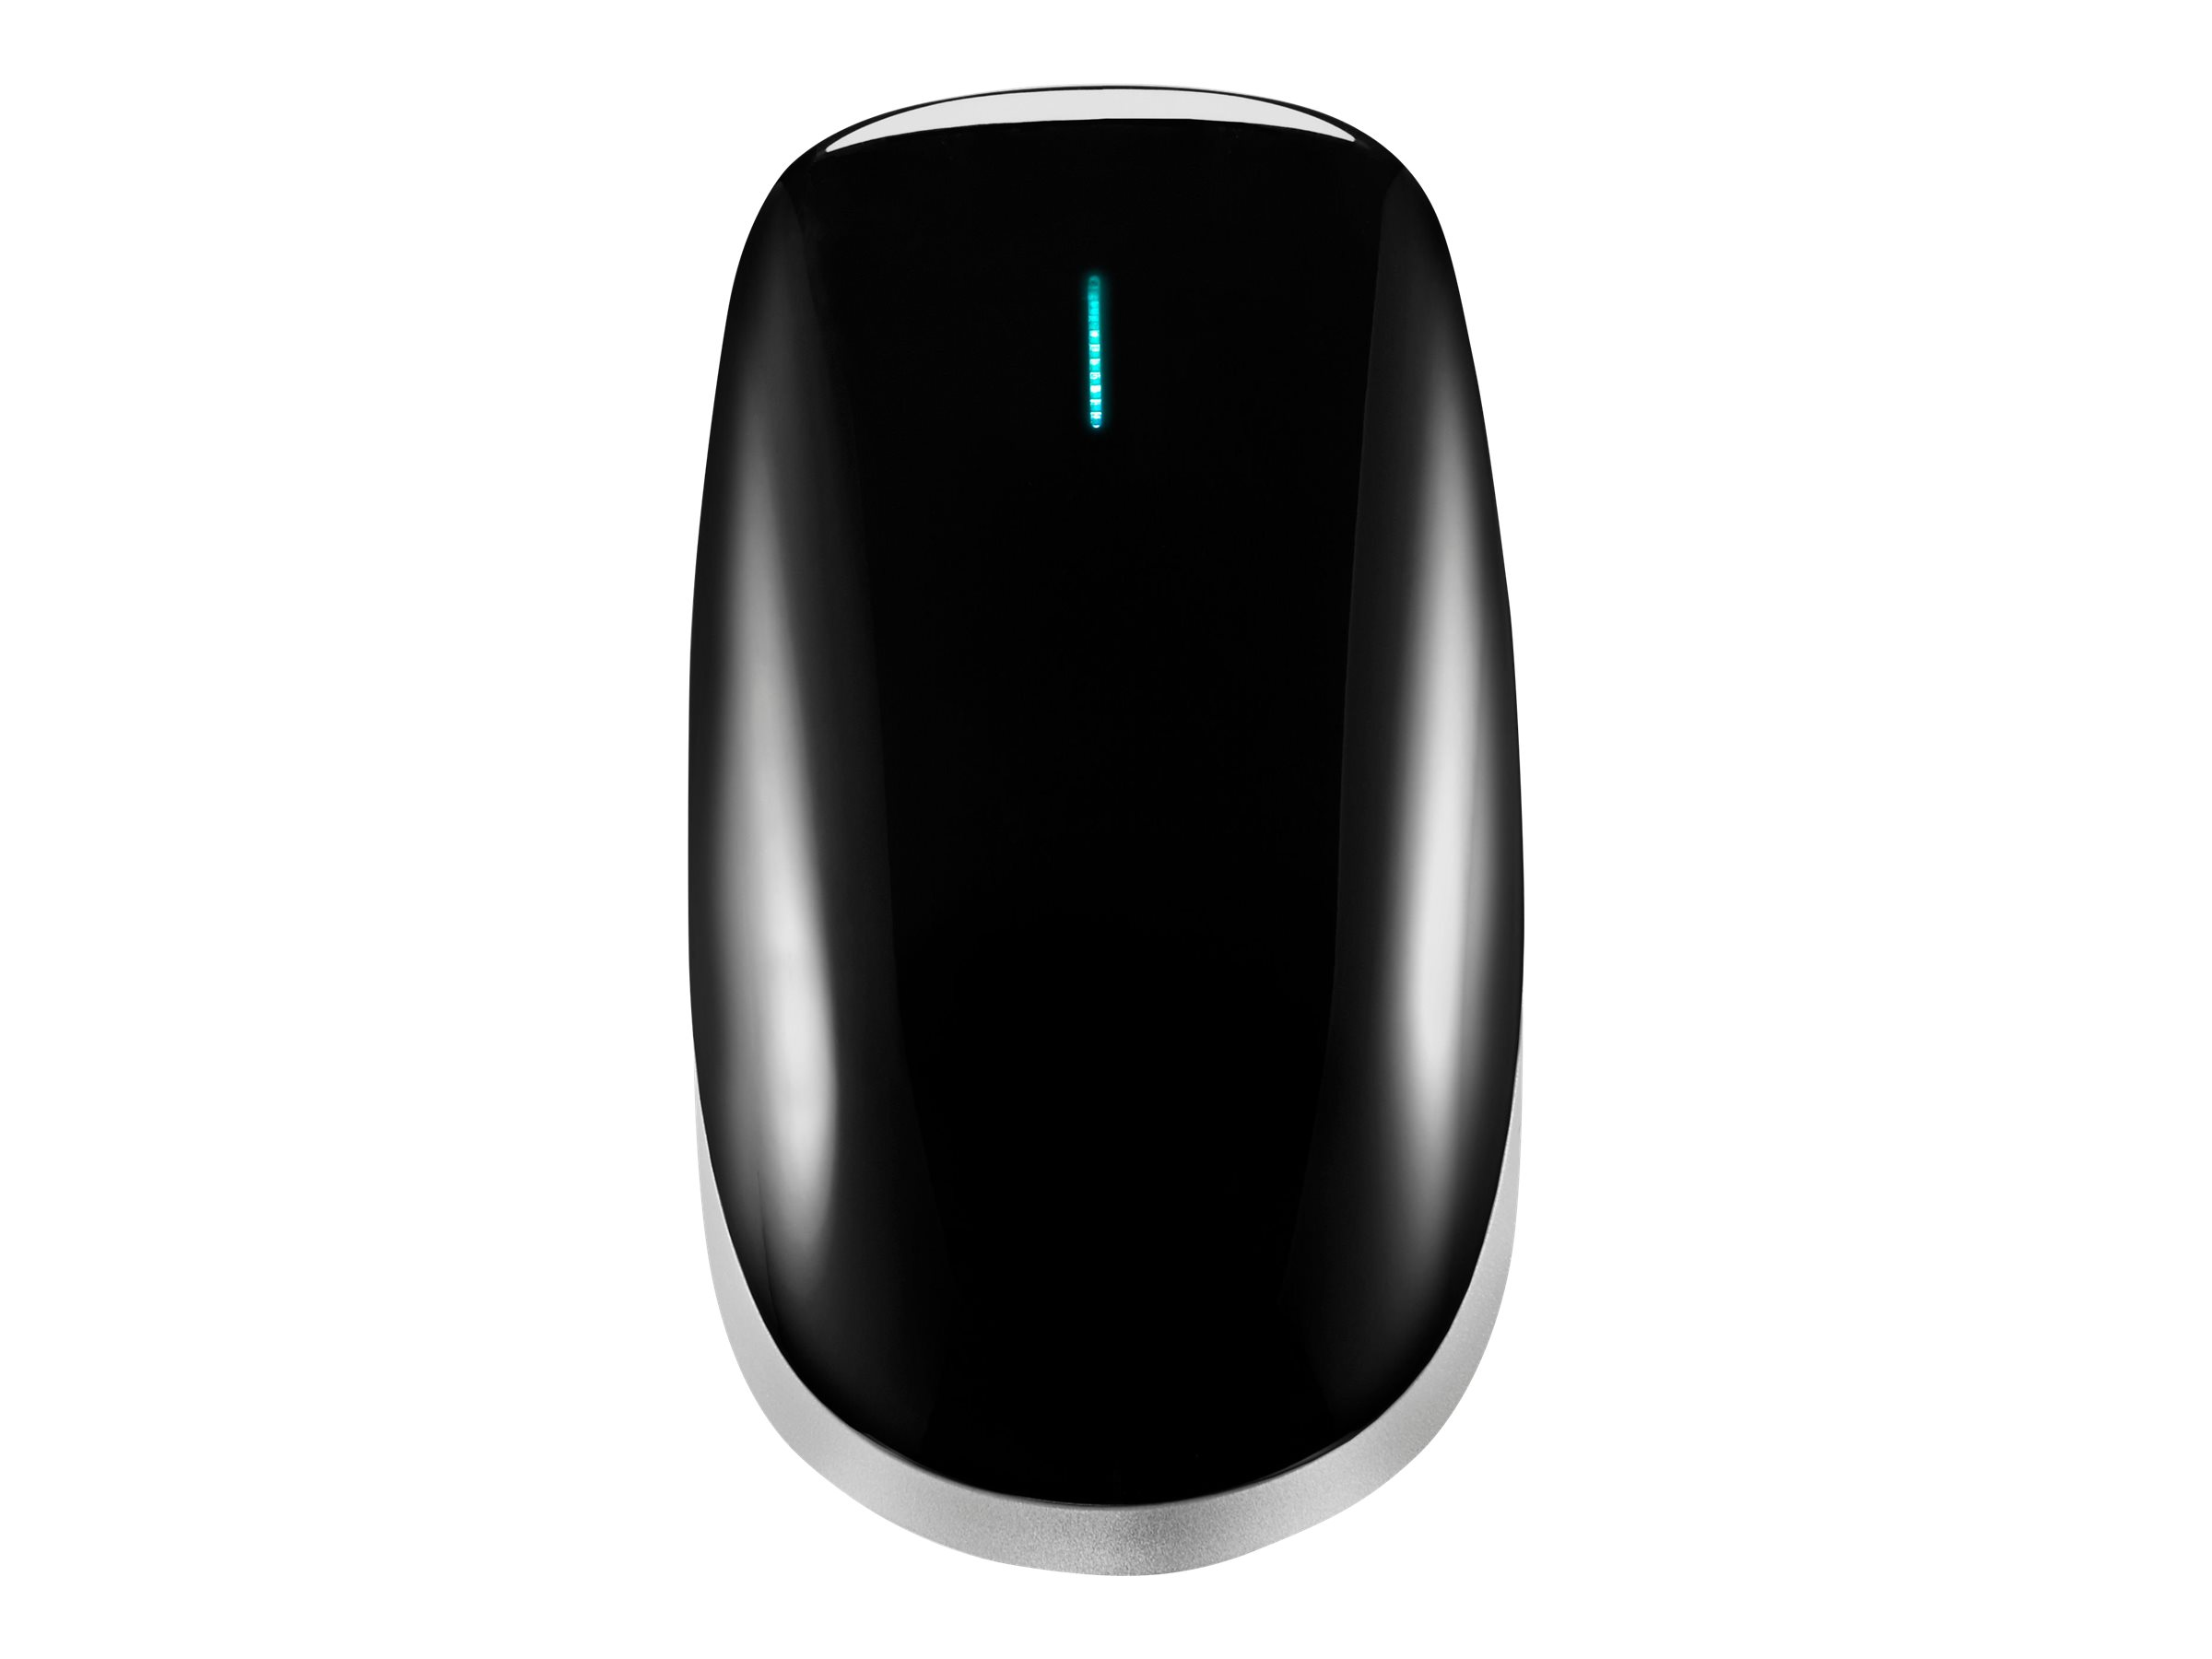 HP UltraThin - mouse - Bluetooth 3.0 - black